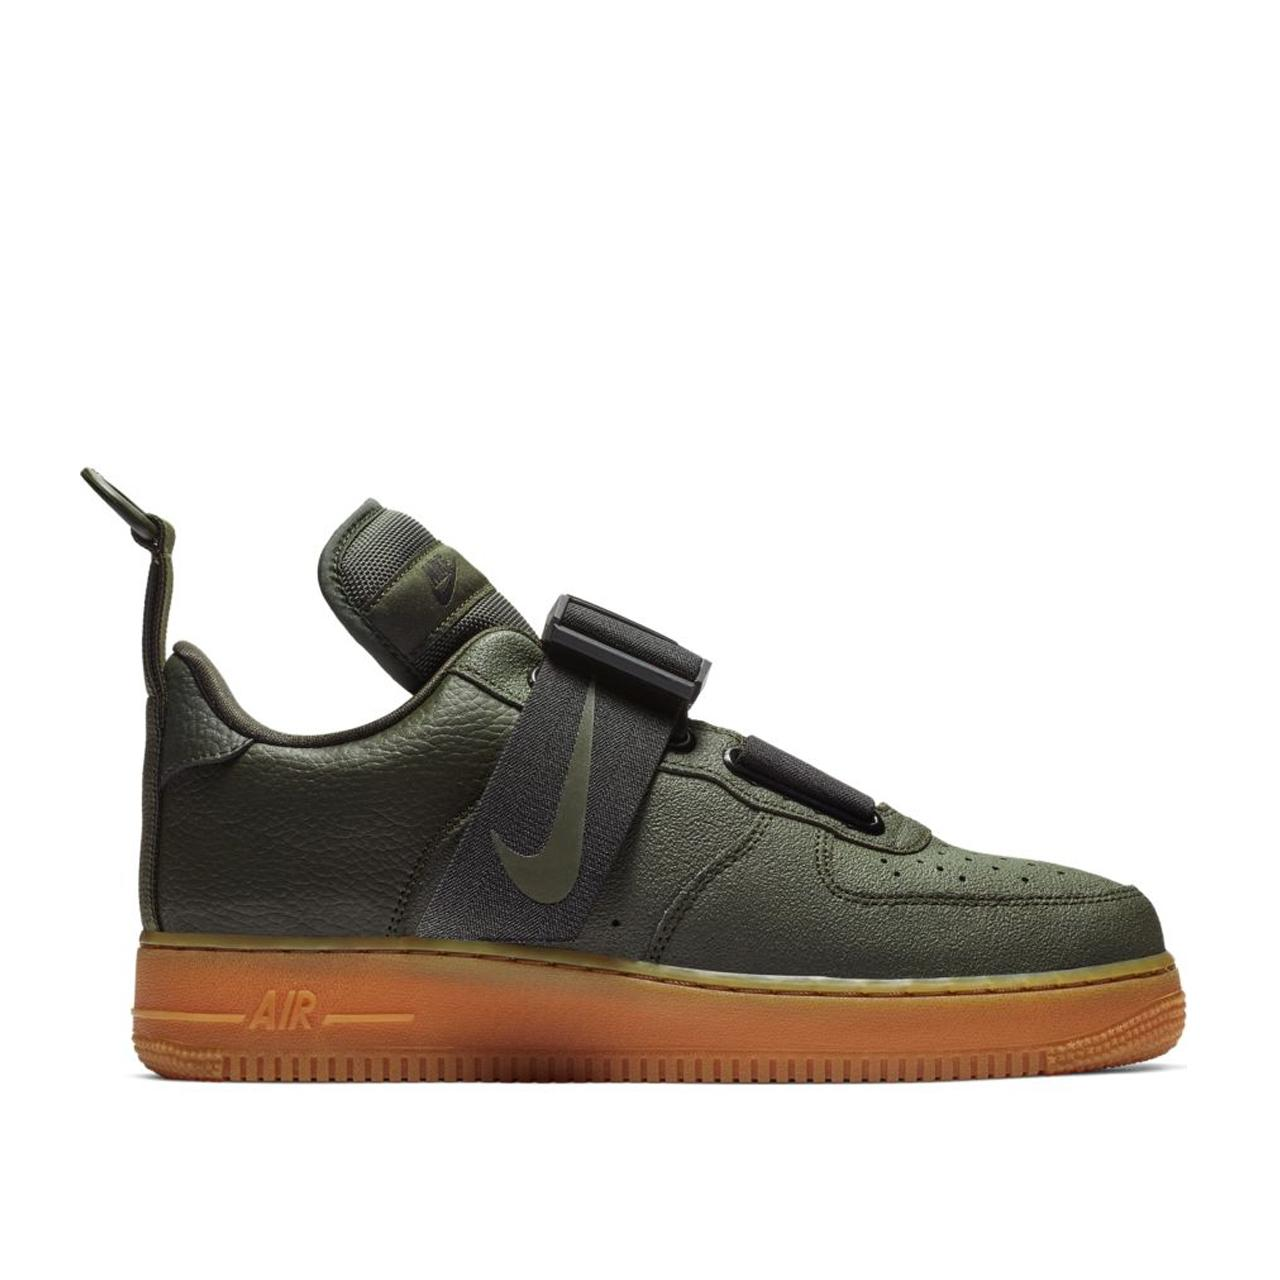 Nike Air Force 1 Utility (Olive) (AO1531 300)